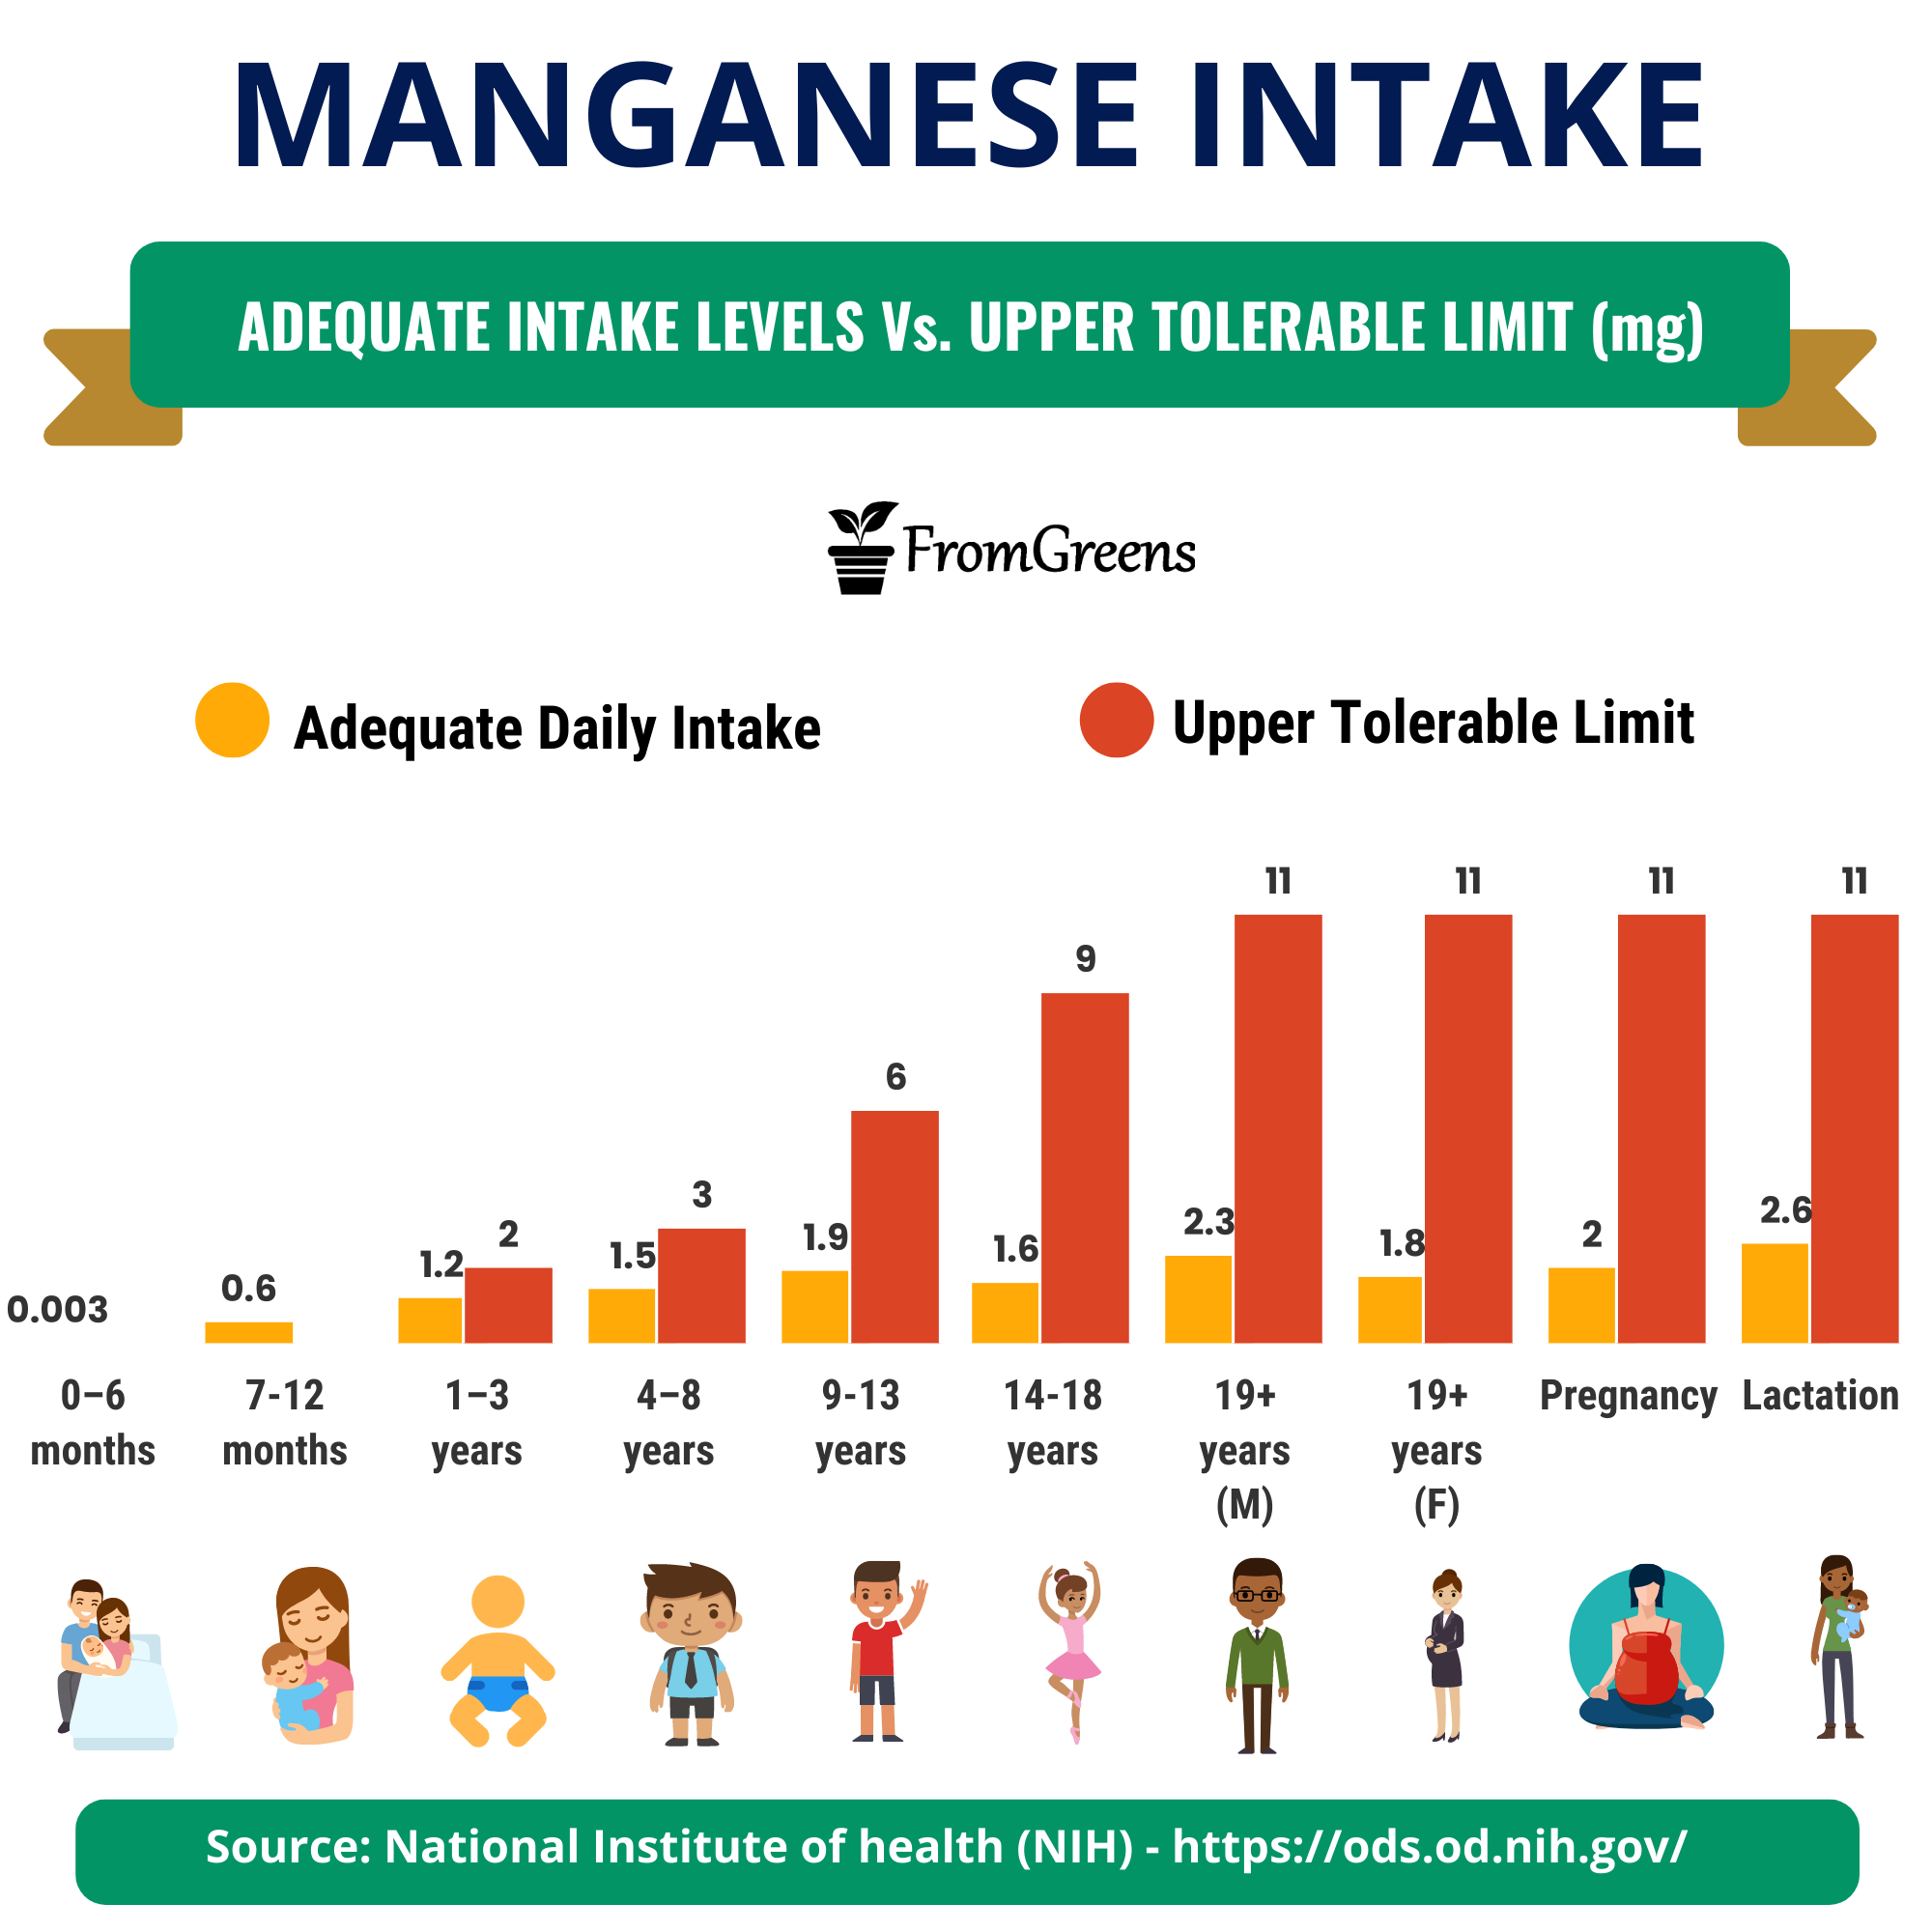 how much manganese is recommended daily